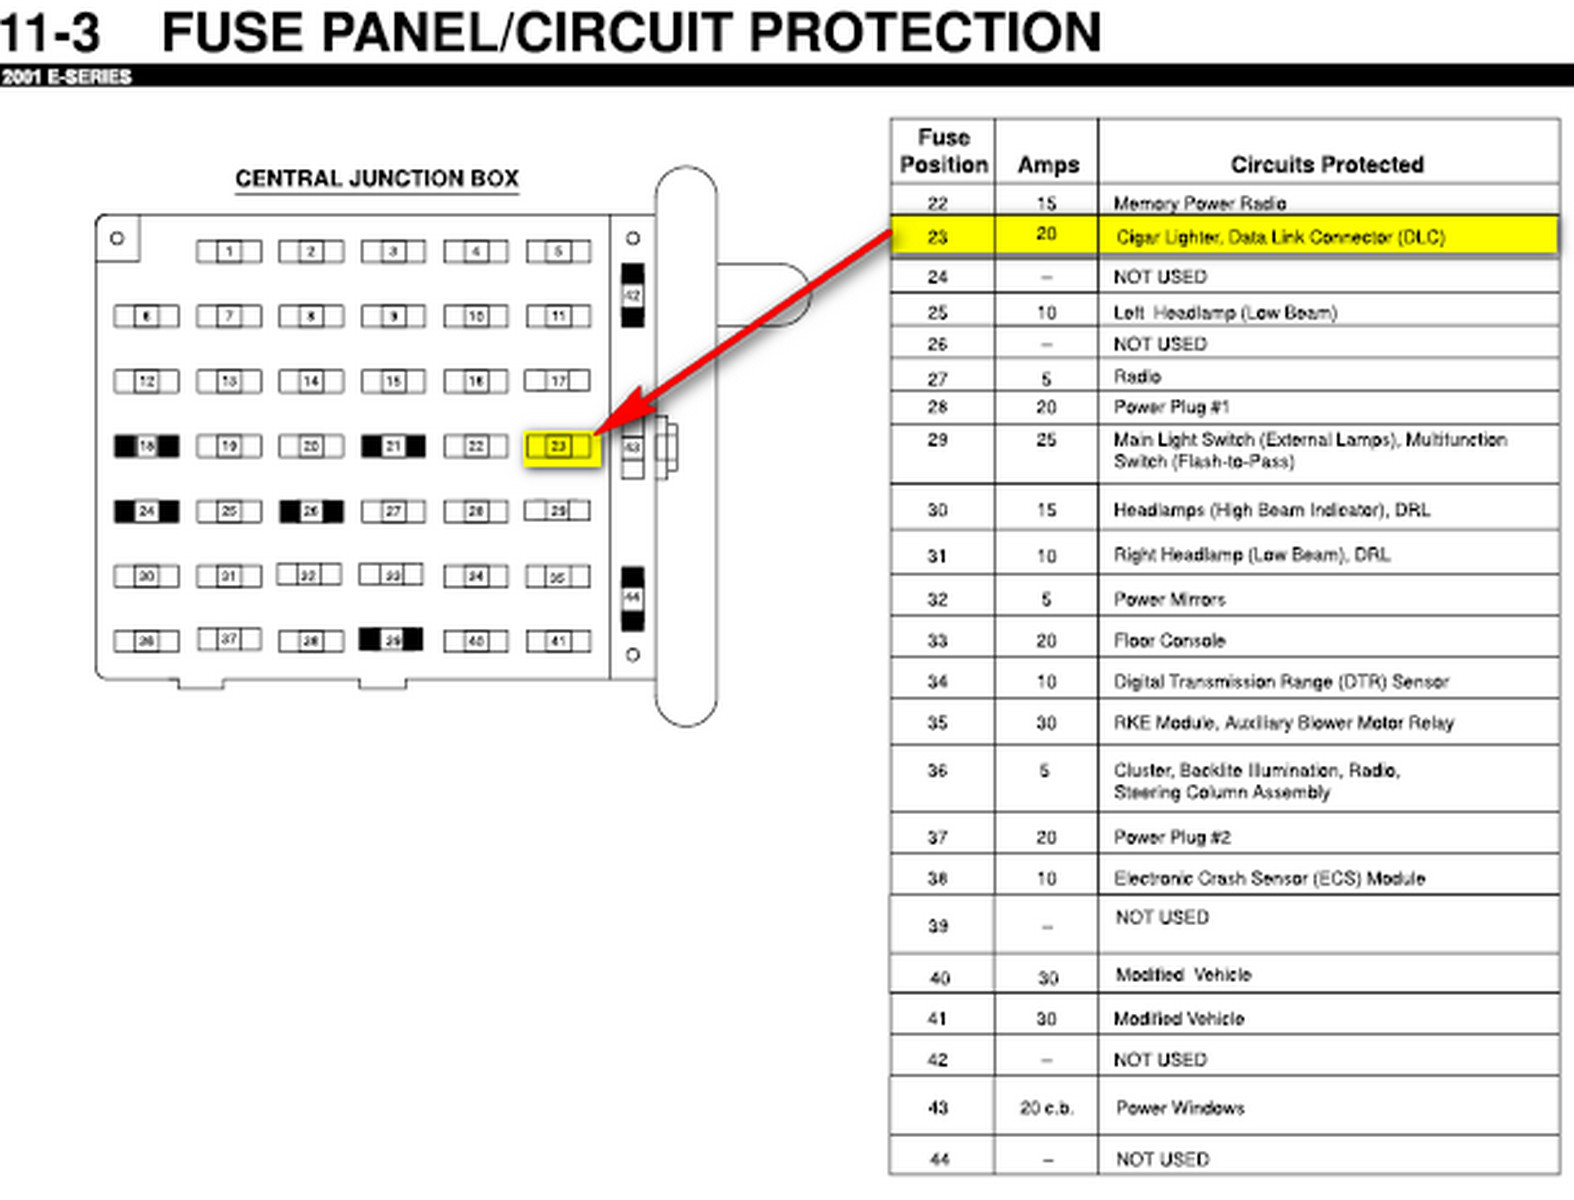 2001 Ford E350 Fuse Panel Diagram Great Design Of Wiring 2006 Box Image Details Rh Motogurumag Com